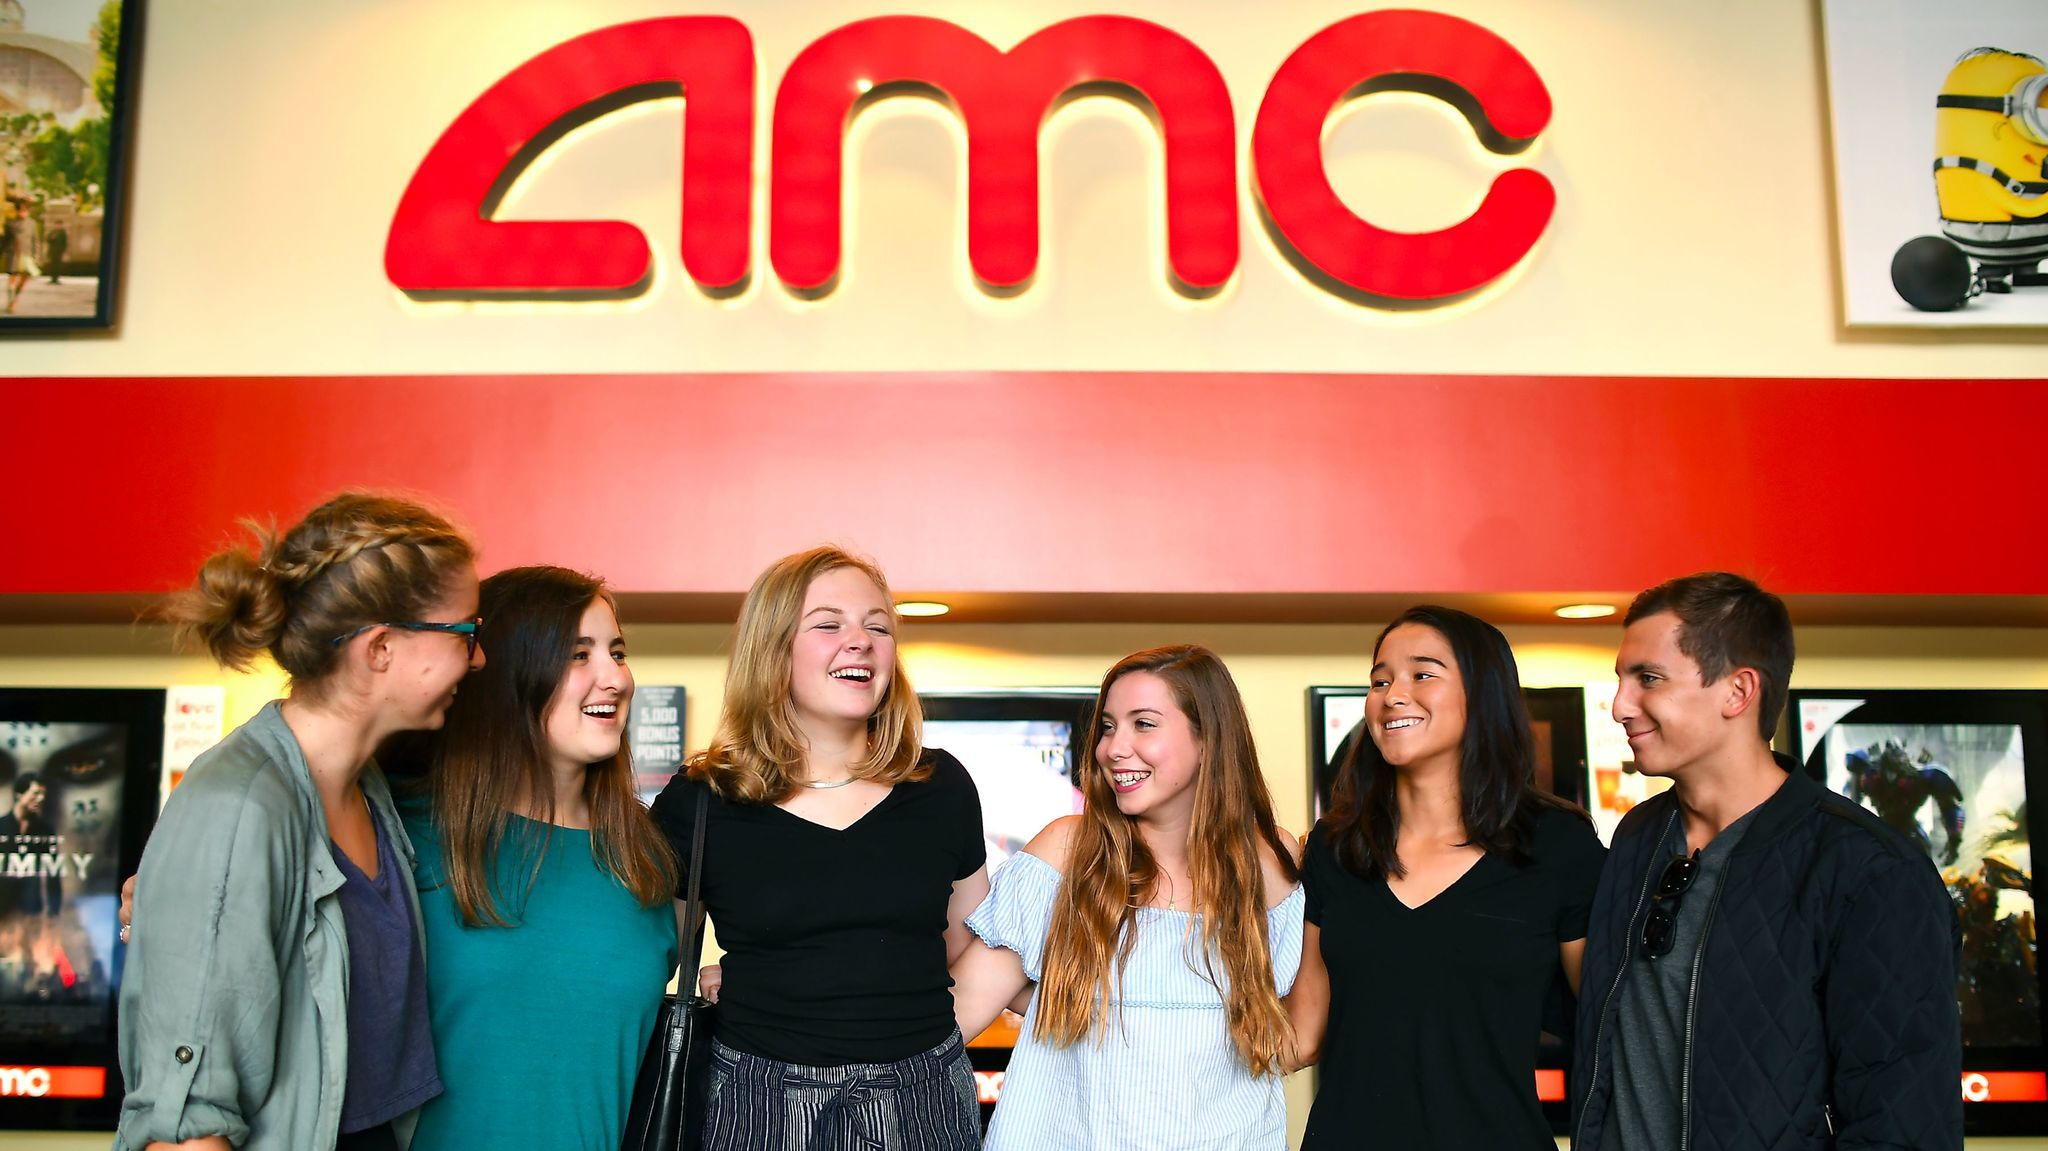 Morgan Gerlach, left, Lana Biren, Zoe Parcells, Natalie Gold, Audrey Hattori and Max Dodd gather at the AMC Santa Monica 7,